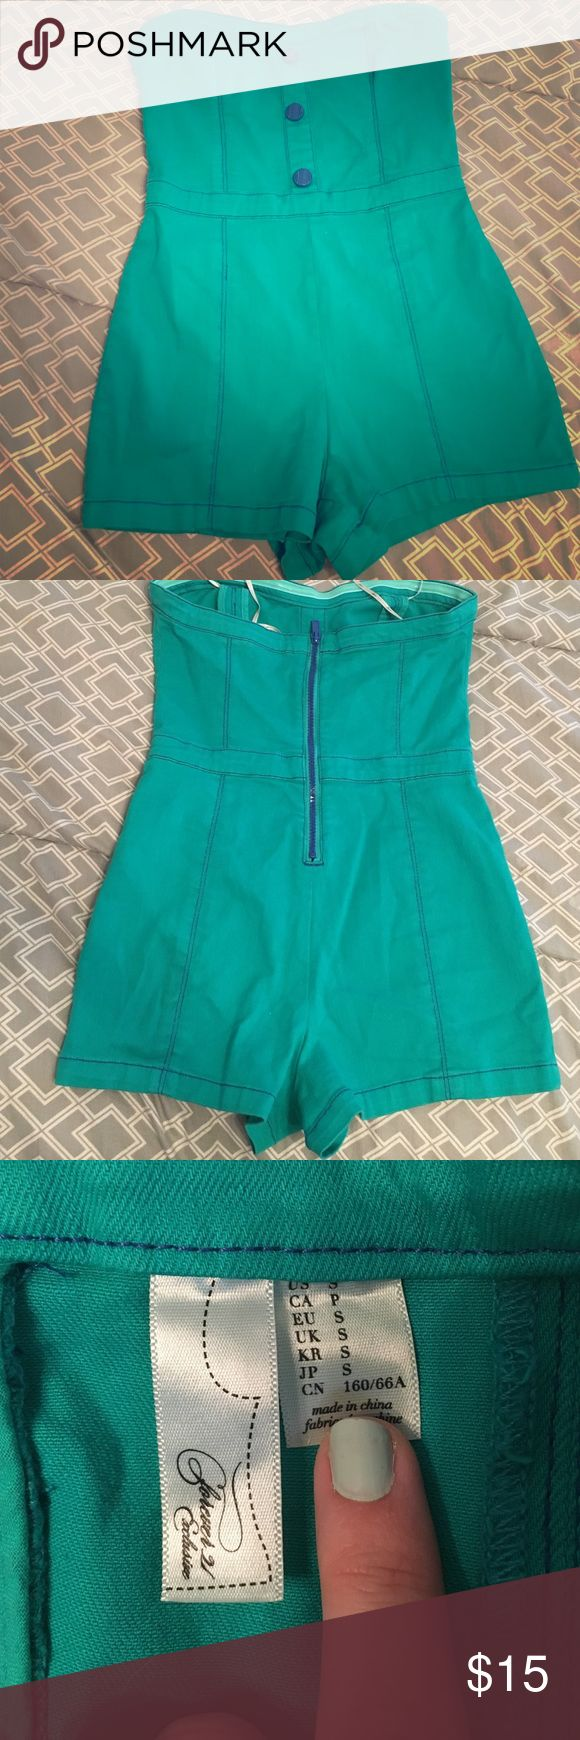 Jean romper Teal jean romper with blue buttons and zipper. Never worn Forever 21 Dresses